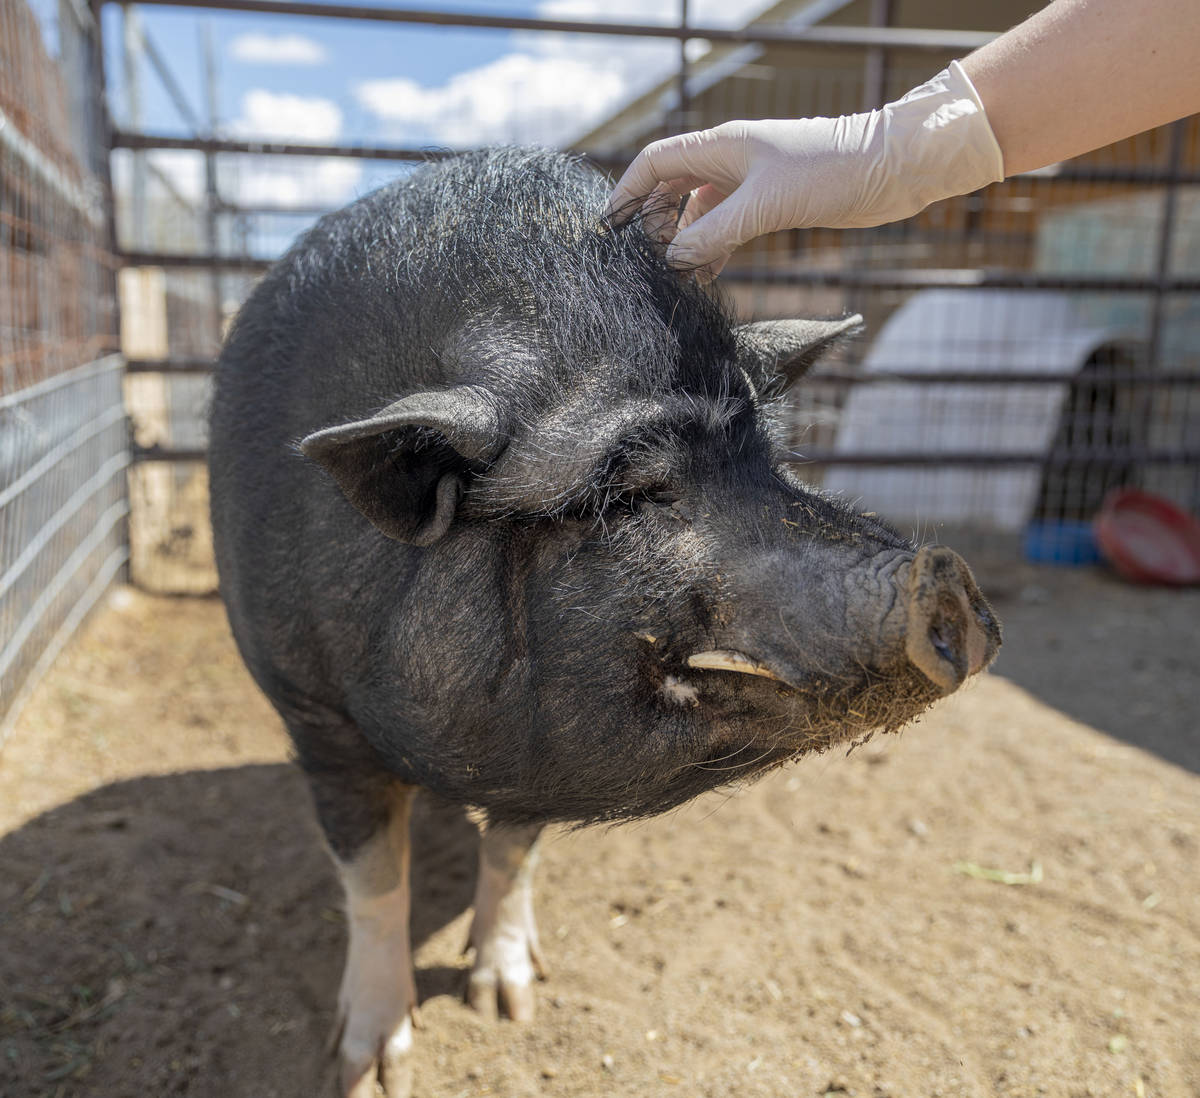 Greg, a pig available for adoption, is pet at his large animal foster parent's home that partne ...